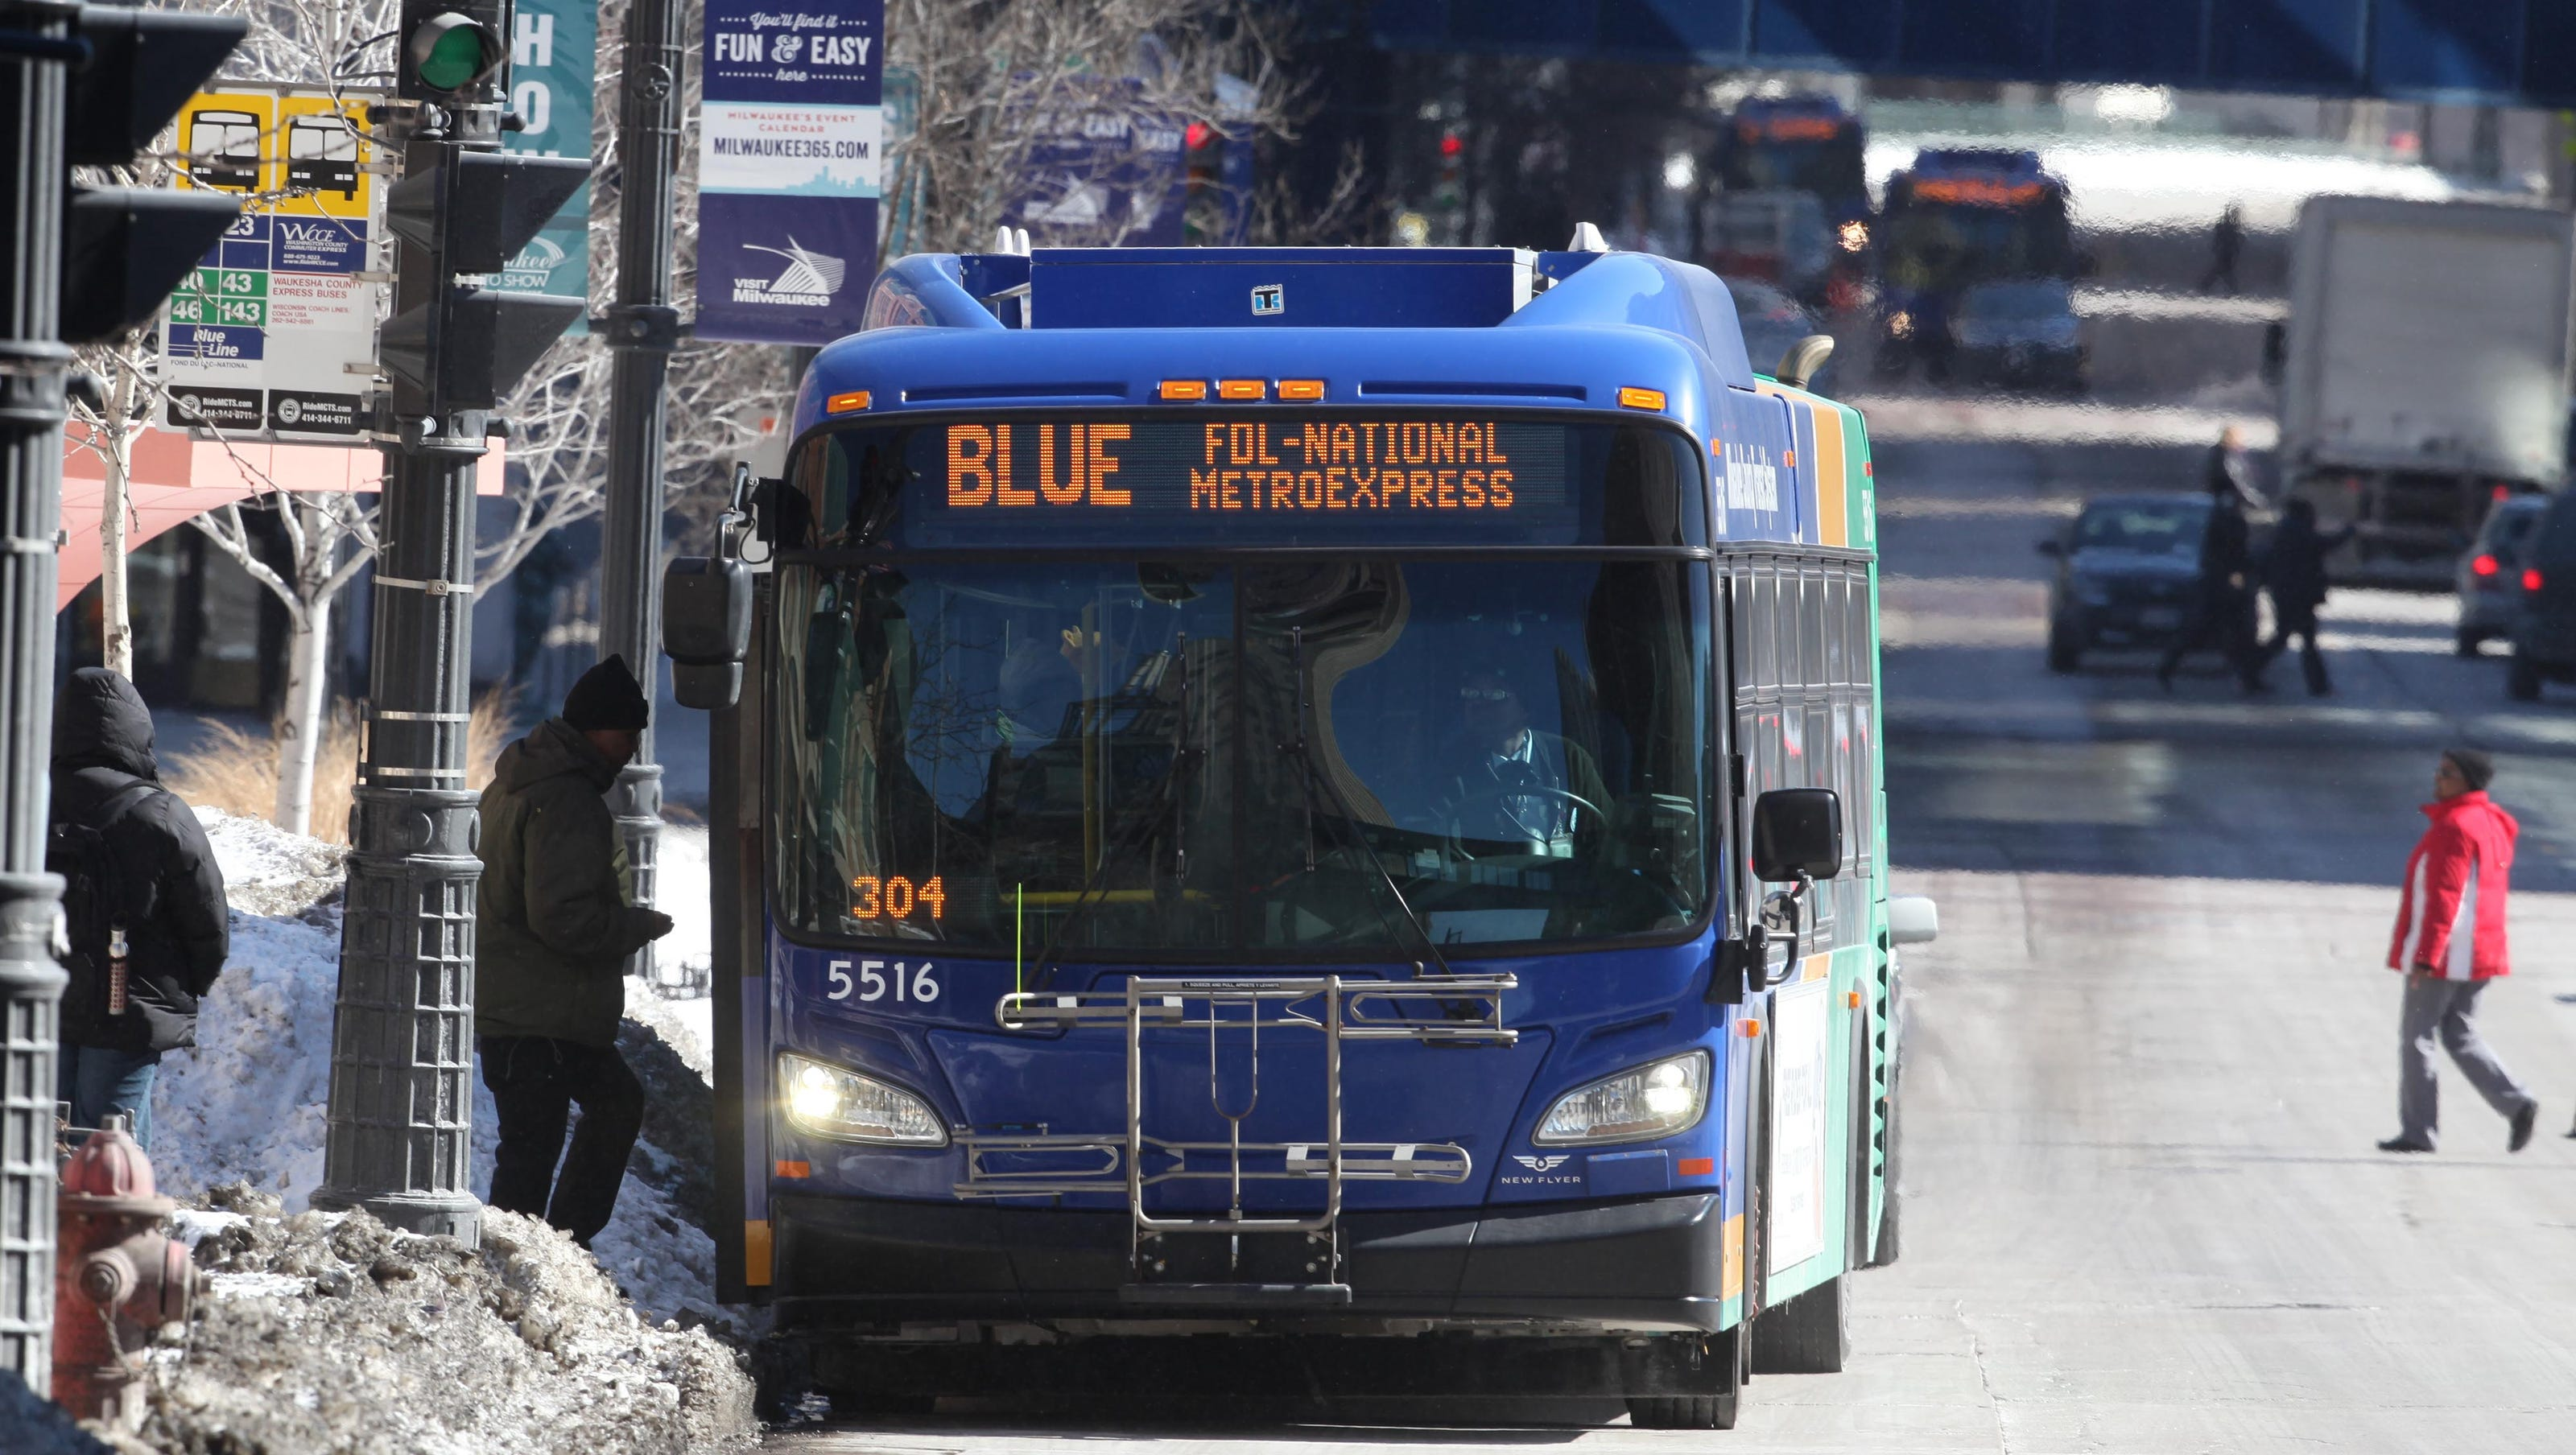 mcts eliminates nine bus routes in response to 2018 budget cuts